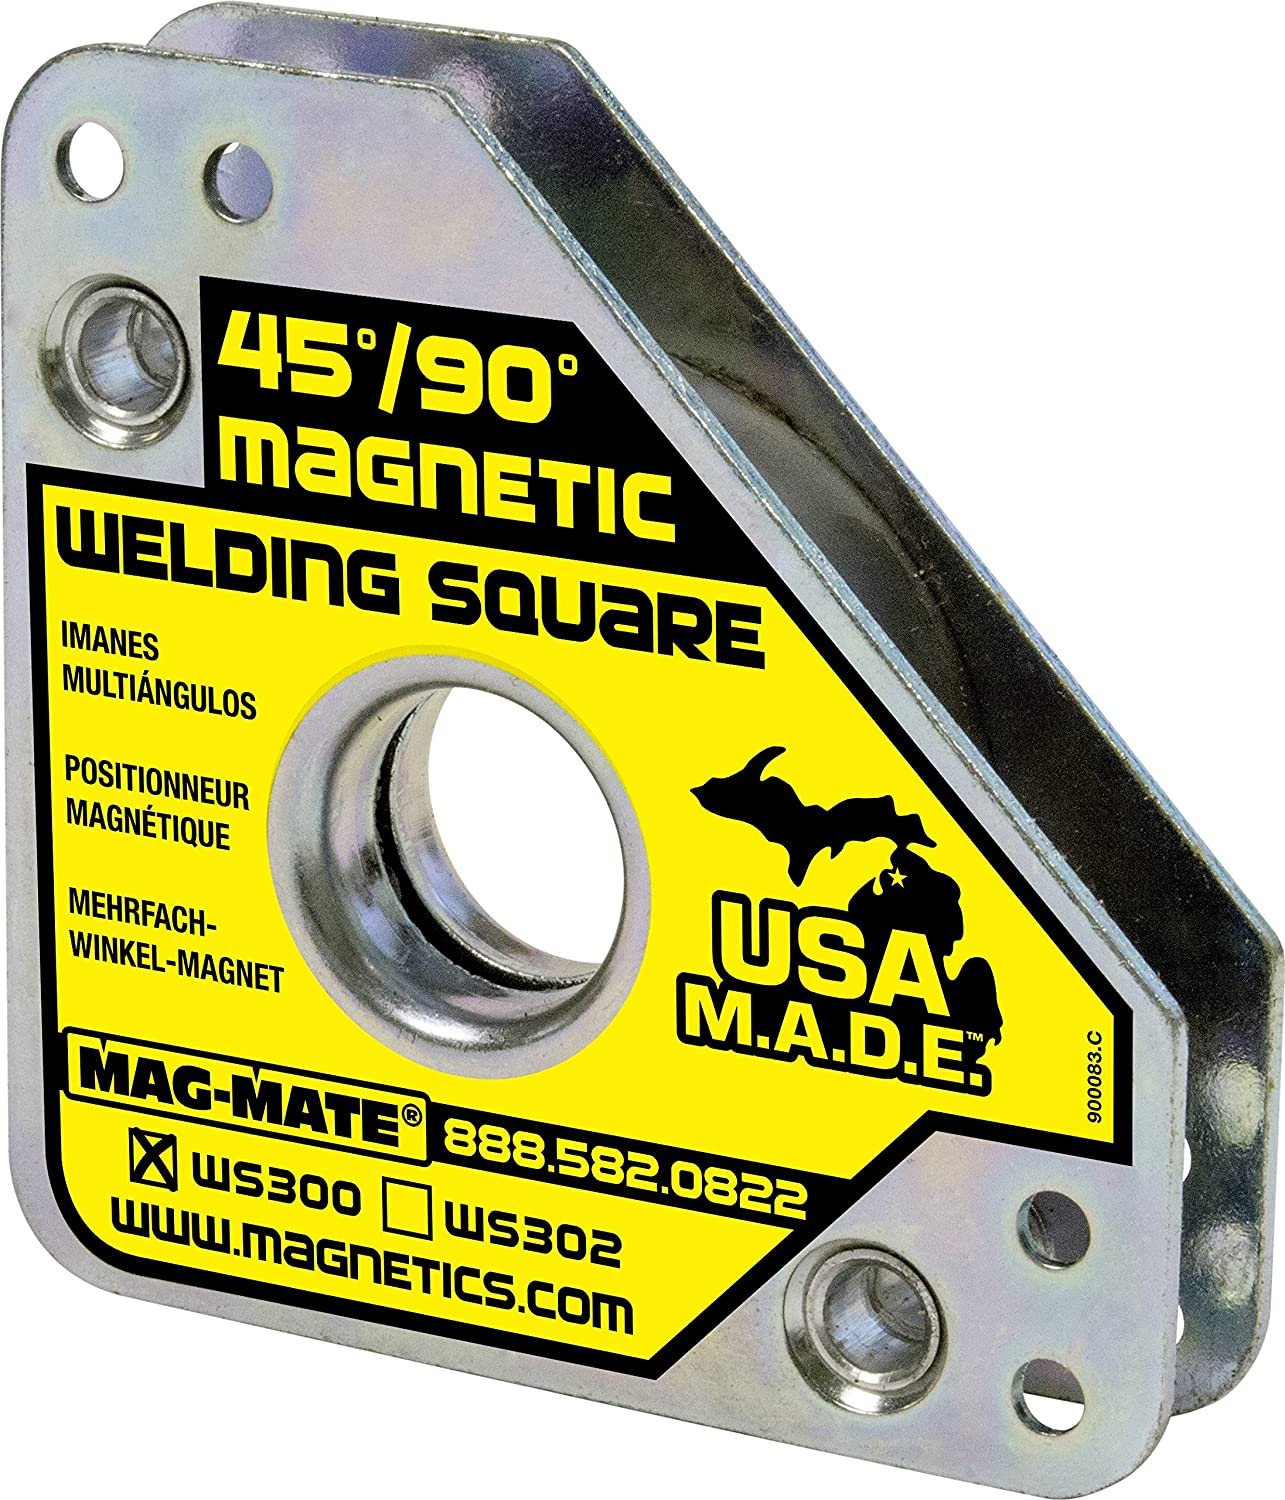 MAG MATE WS300 Compact Magnetic Welding Square with 55 lb Capacity